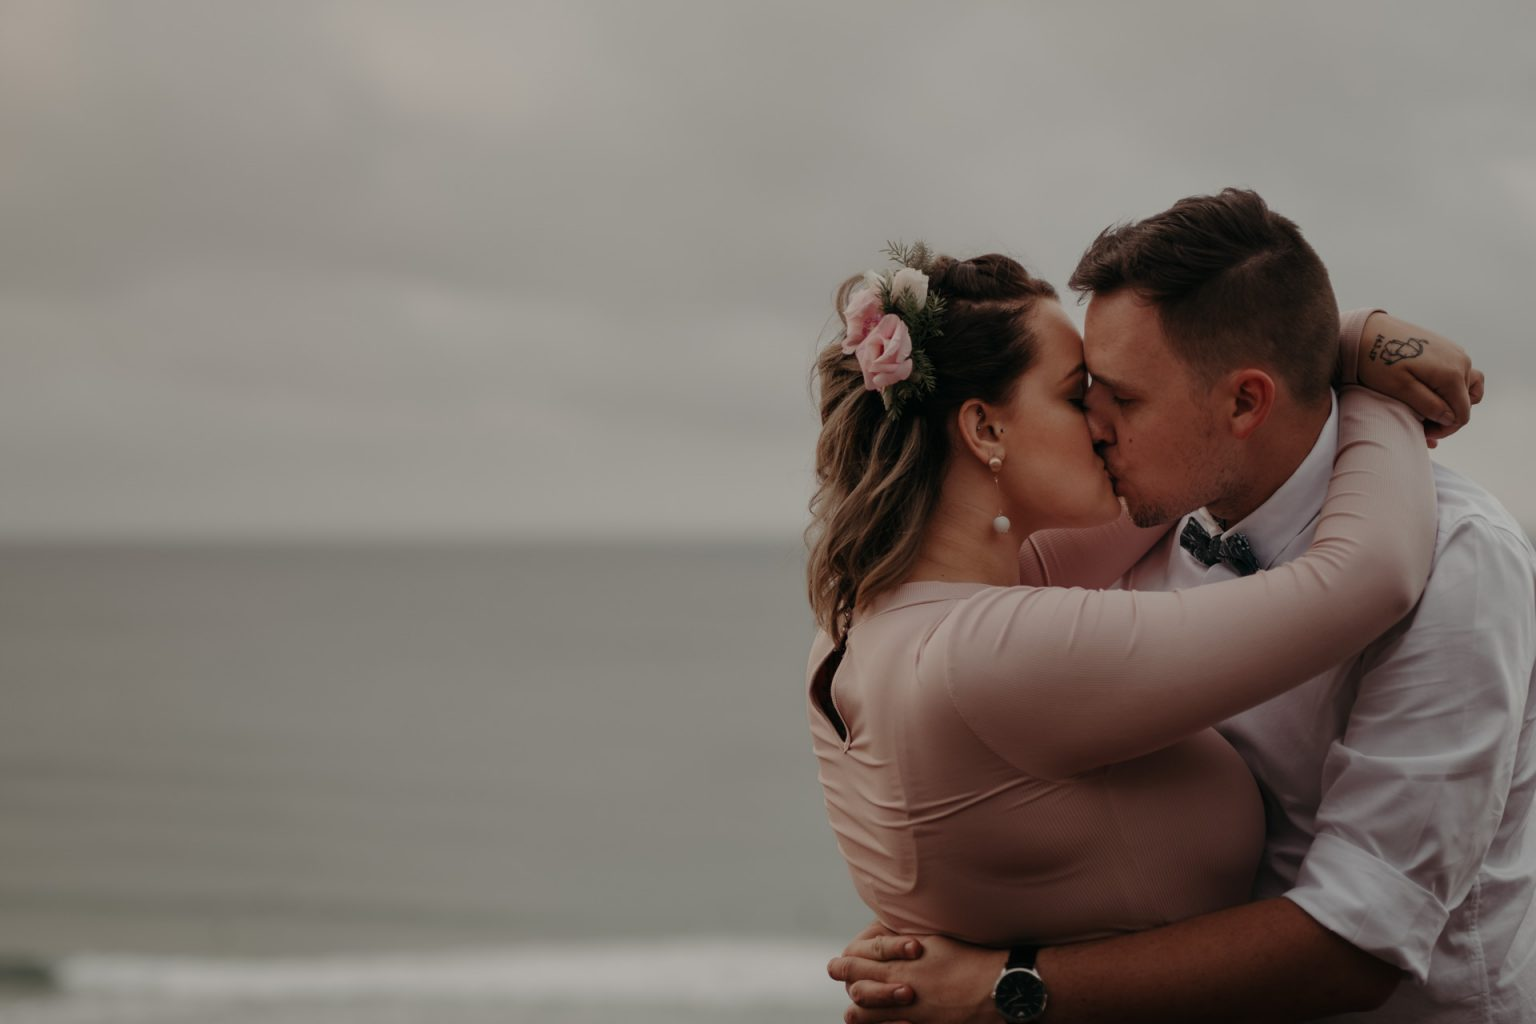 bride and groom on cliff storm clouds pink dress kiss